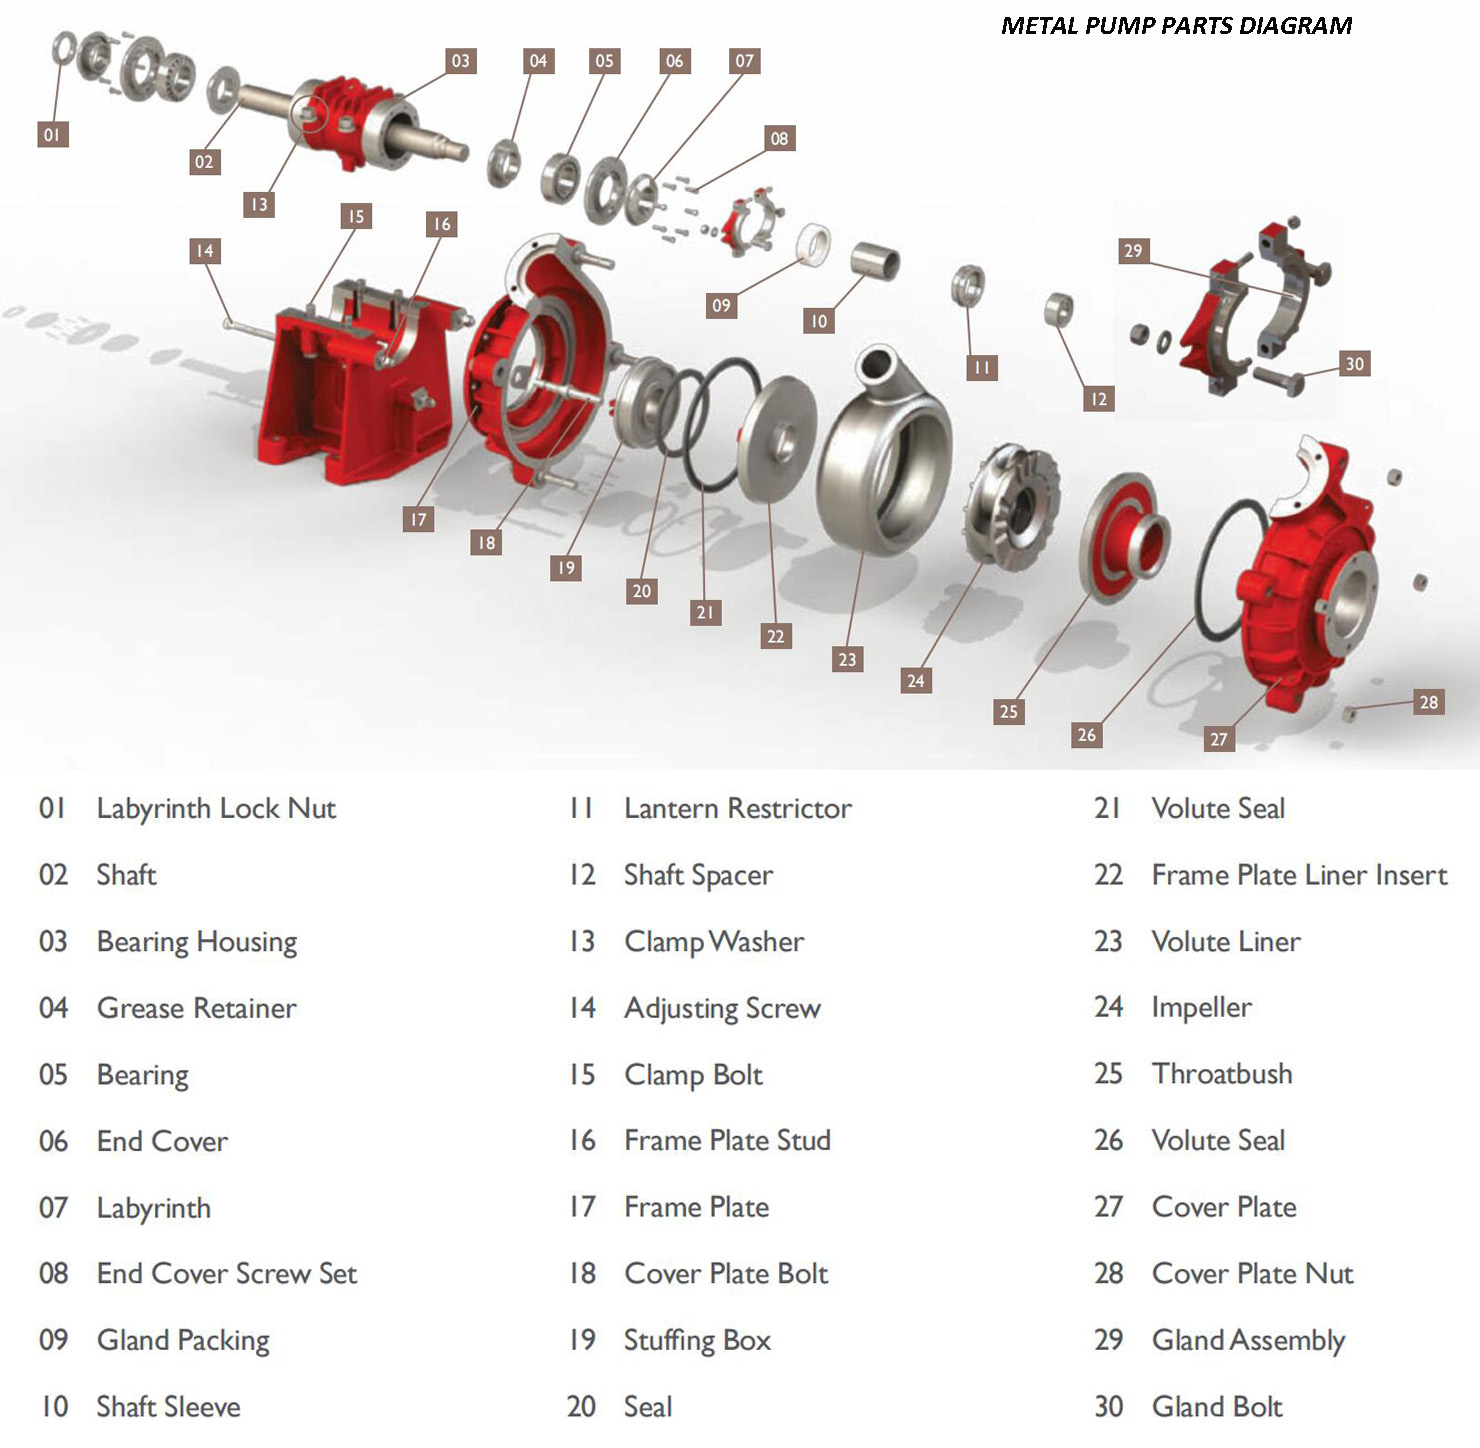 METAL PUMP PARTS DIAGRAM